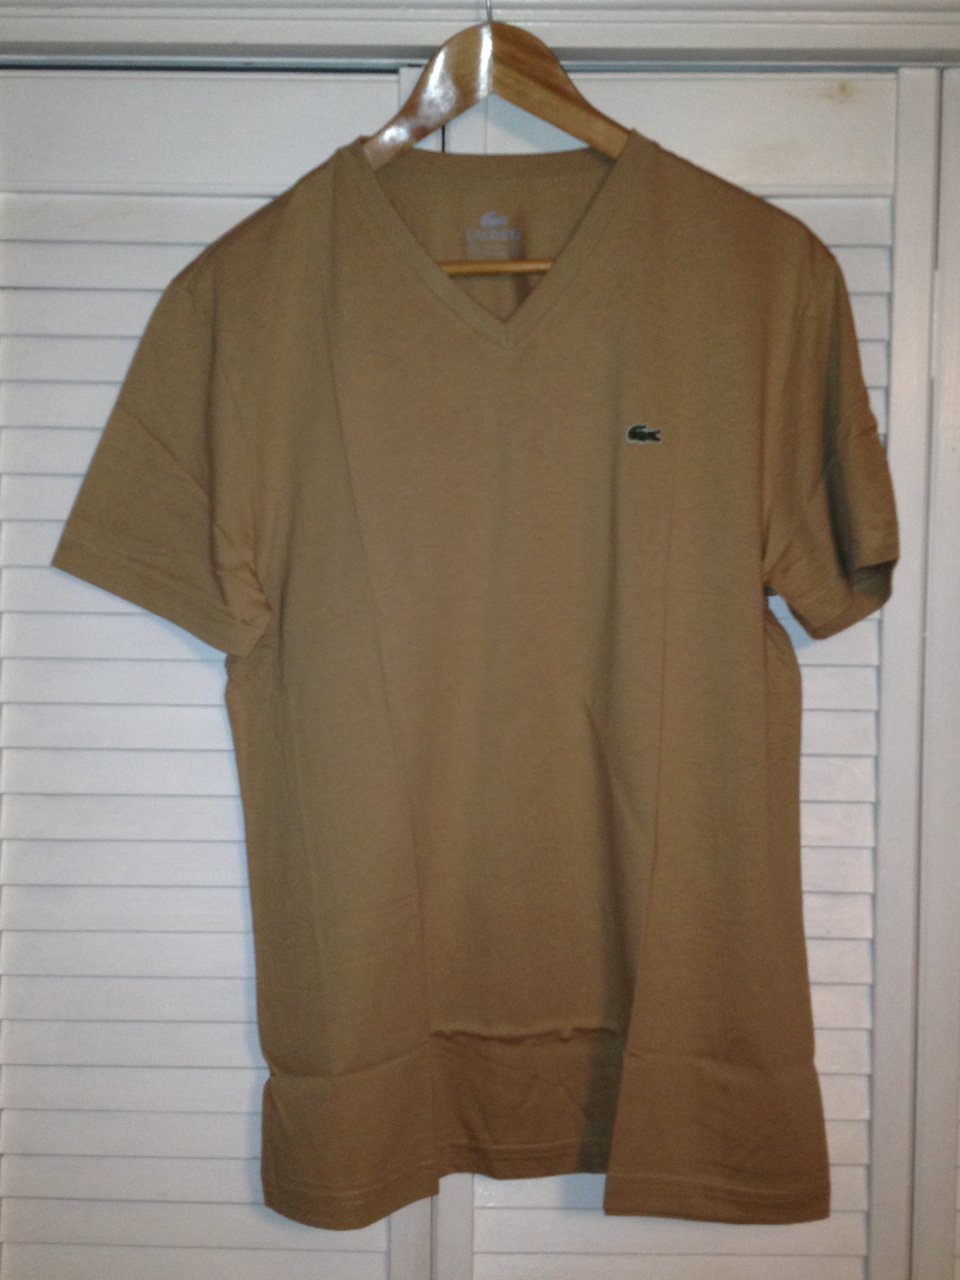 Lacoste Mens V Neck T Shirt - Sahara (Tan)